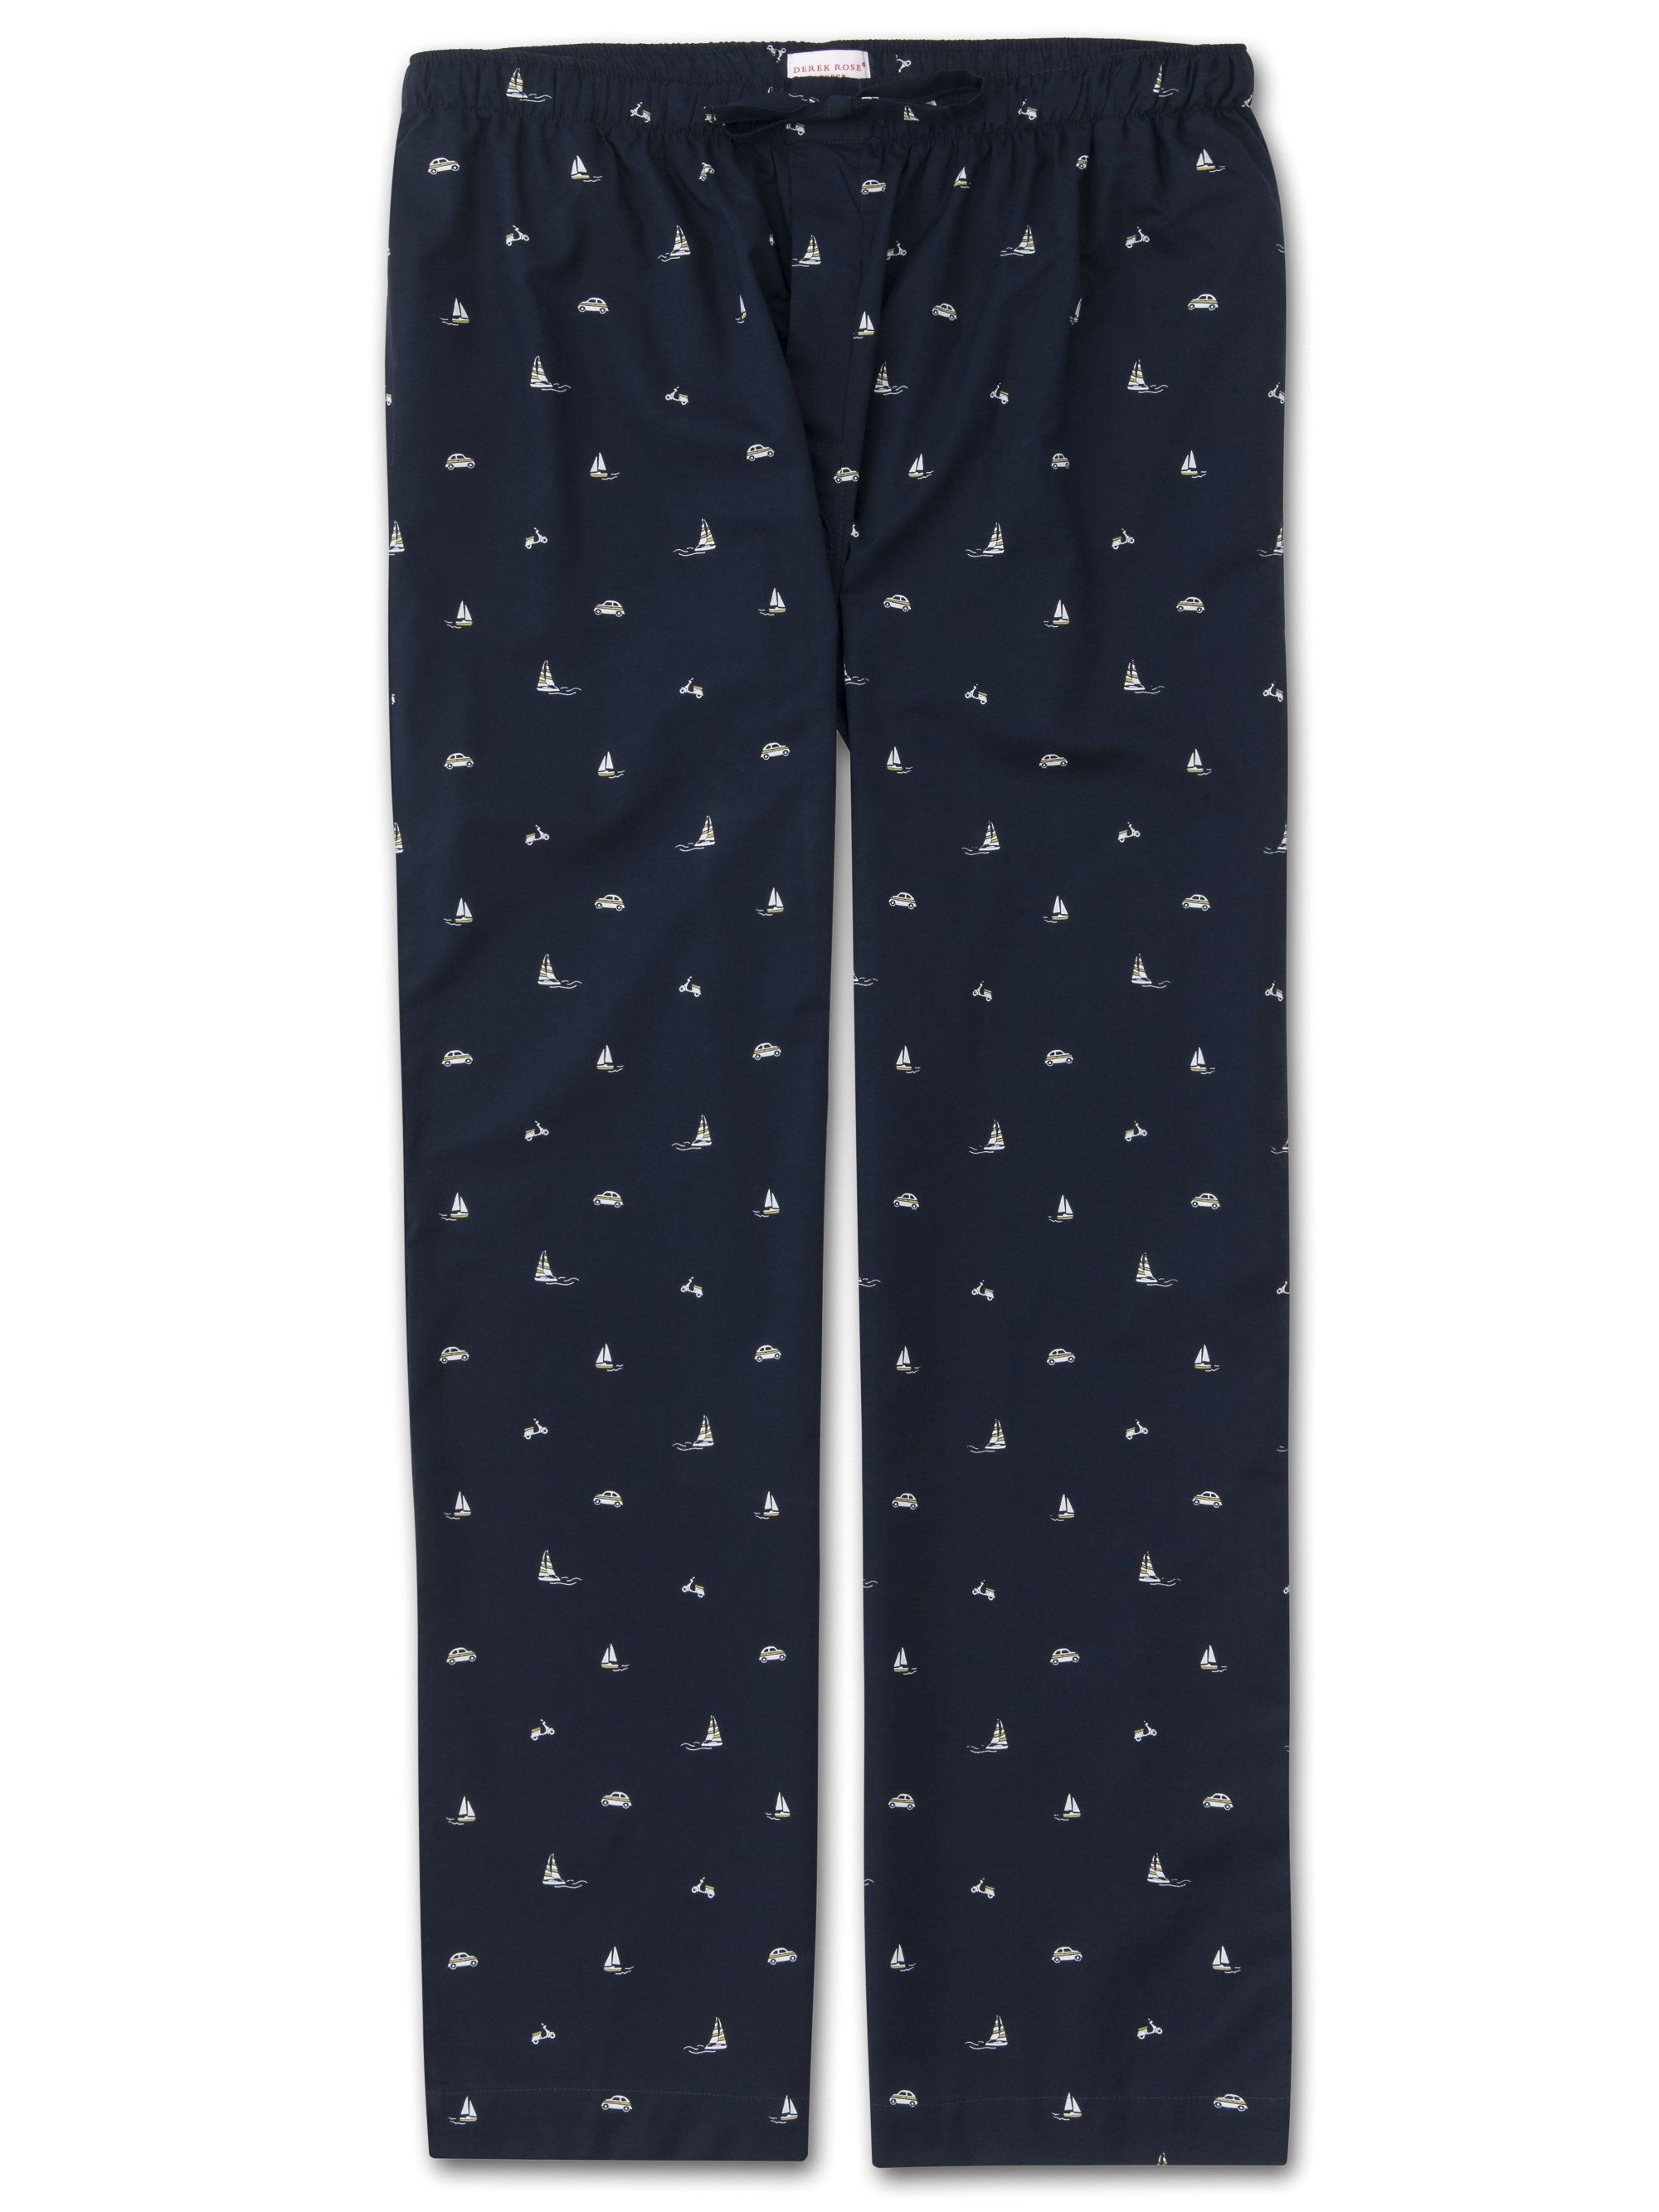 Men's Lounge Trousers Nelson 73 Cotton Batiste Navy